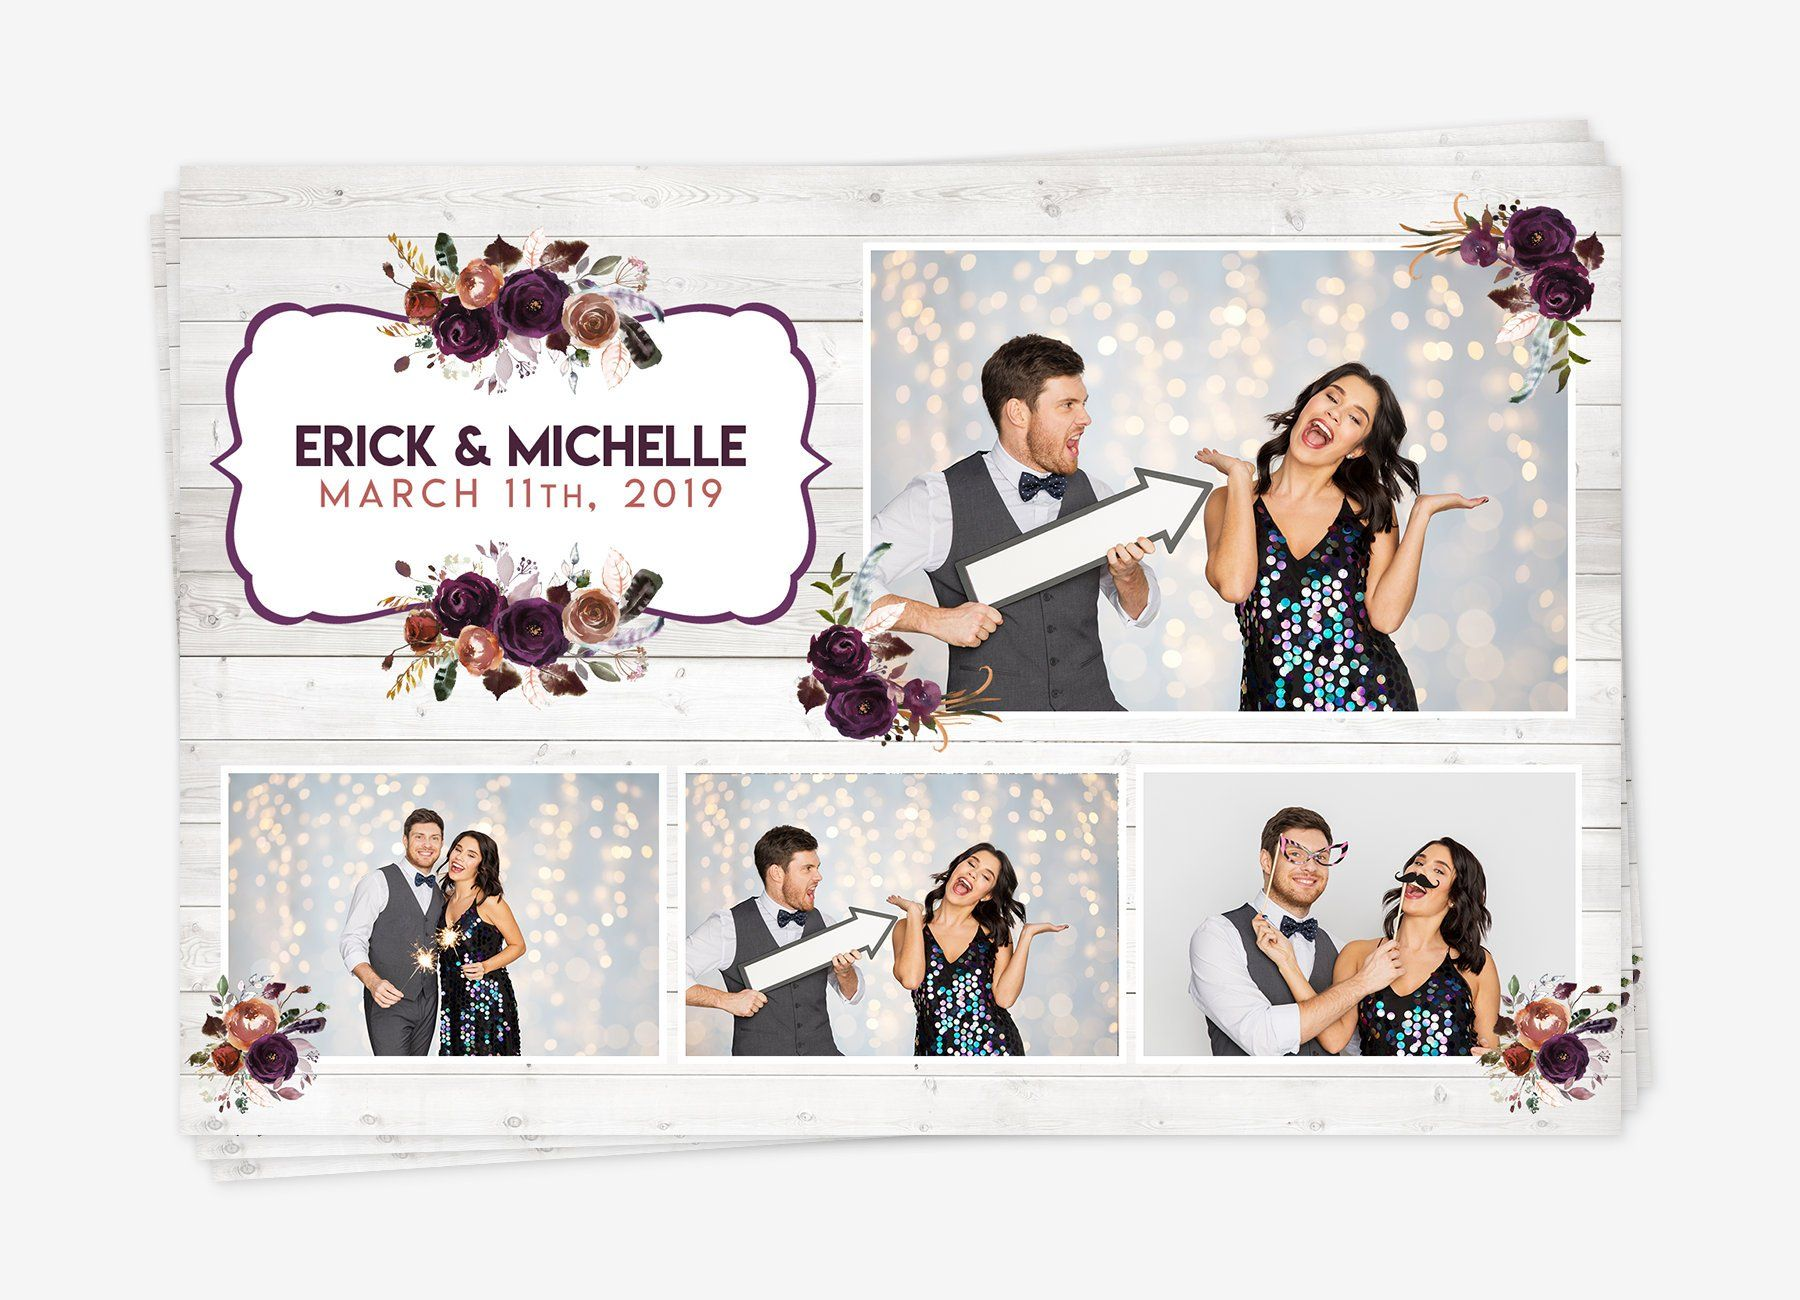 Photobooth Save The Date Card Template Free Greetings Island Photo Booth Save The Date Templates Save The Date Cards